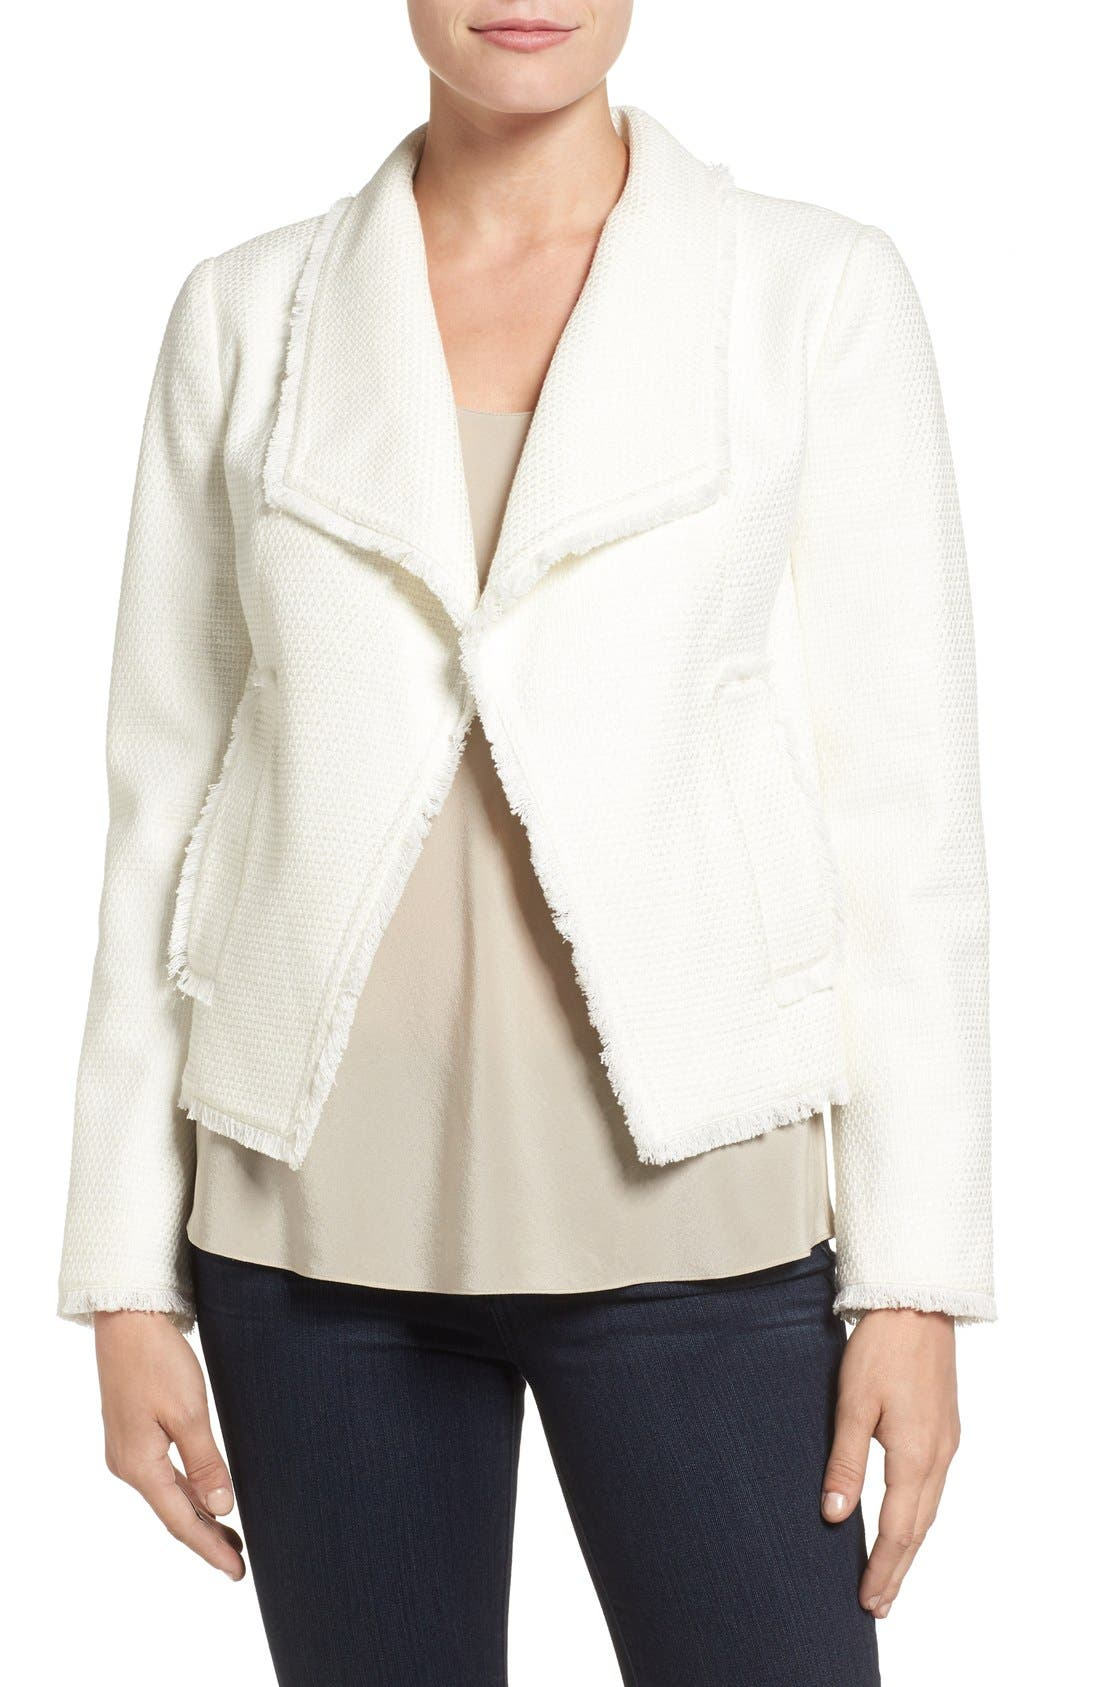 Main Image - MICHAEL Michael Kors Tweed Jacket